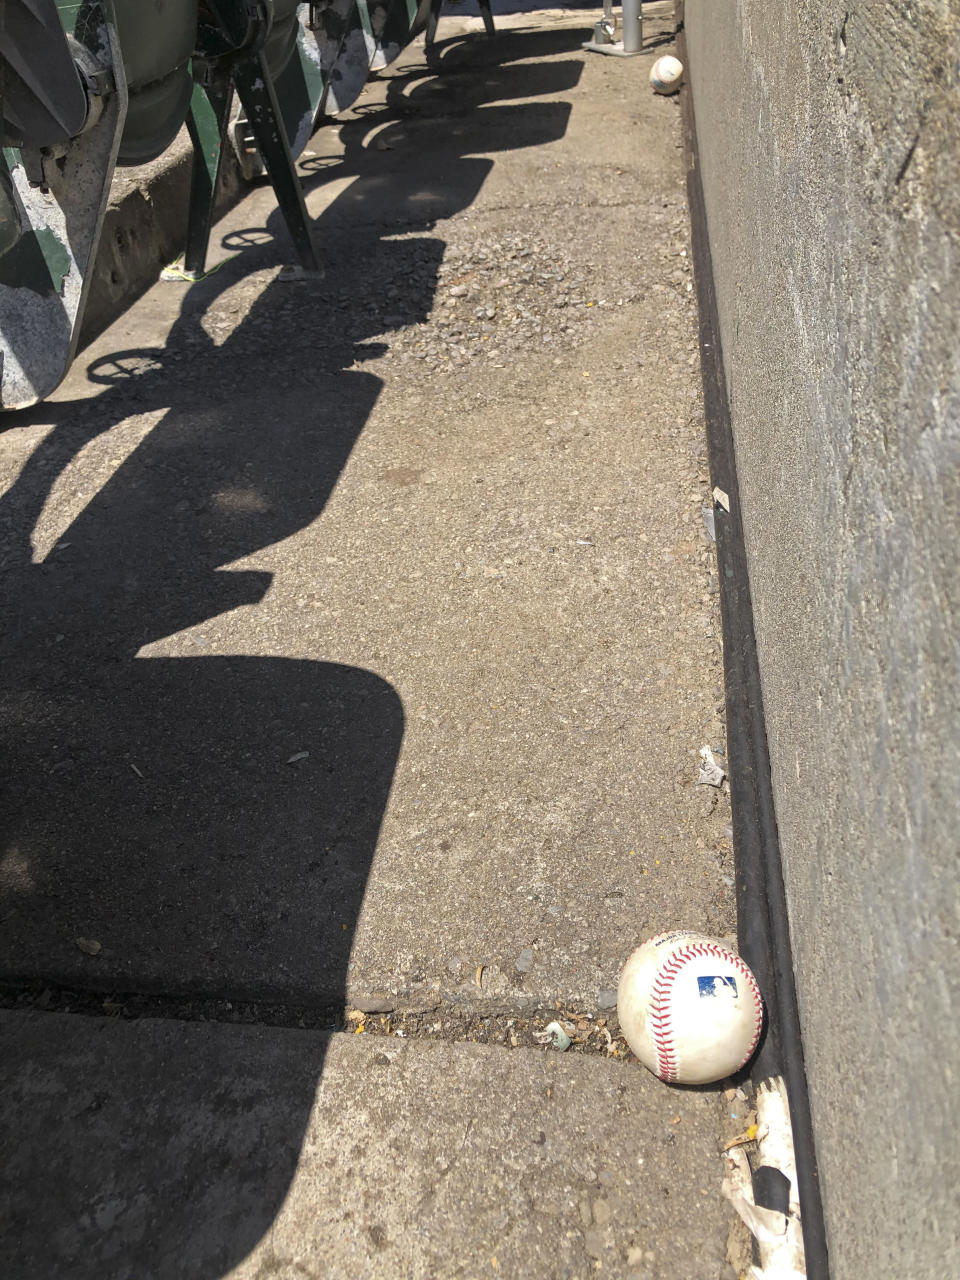 Baseballs fouled off by players are seen stopped at the bottom row of the Oakland Coliseum after rolling down through empty stands during the baseball game between the Los Angeles Angels and the Oakland Athletics on Monday, July 27, 2020, in Oakland, Calif. (AP Photo/Ben Margot)